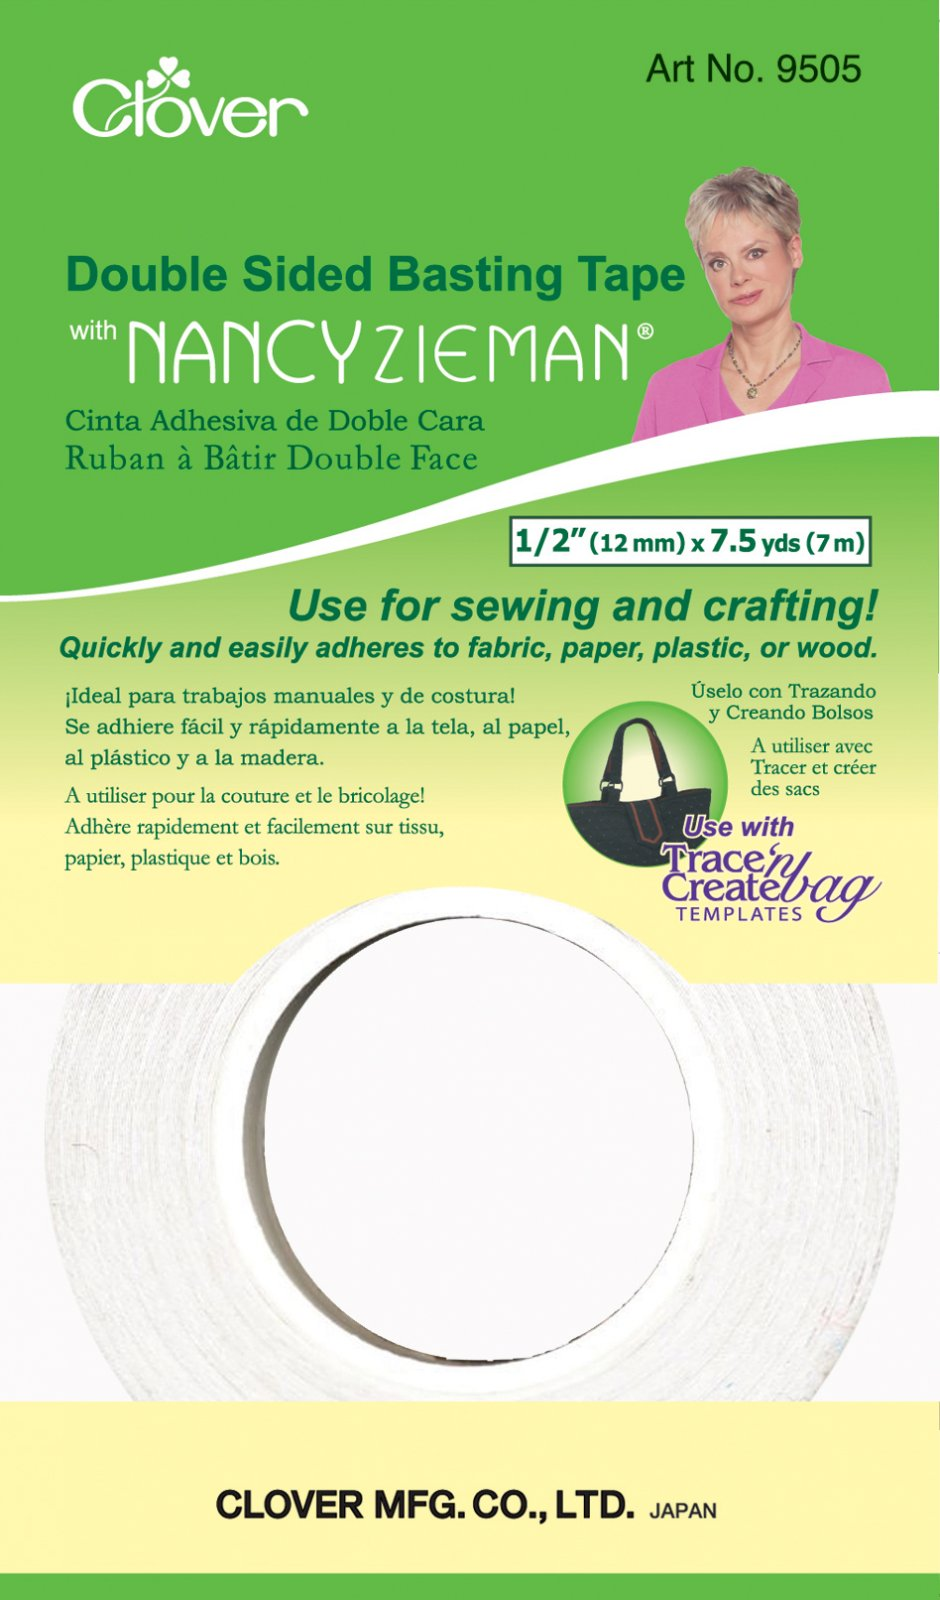 Clover - 9505 Double Sided Basting Tape